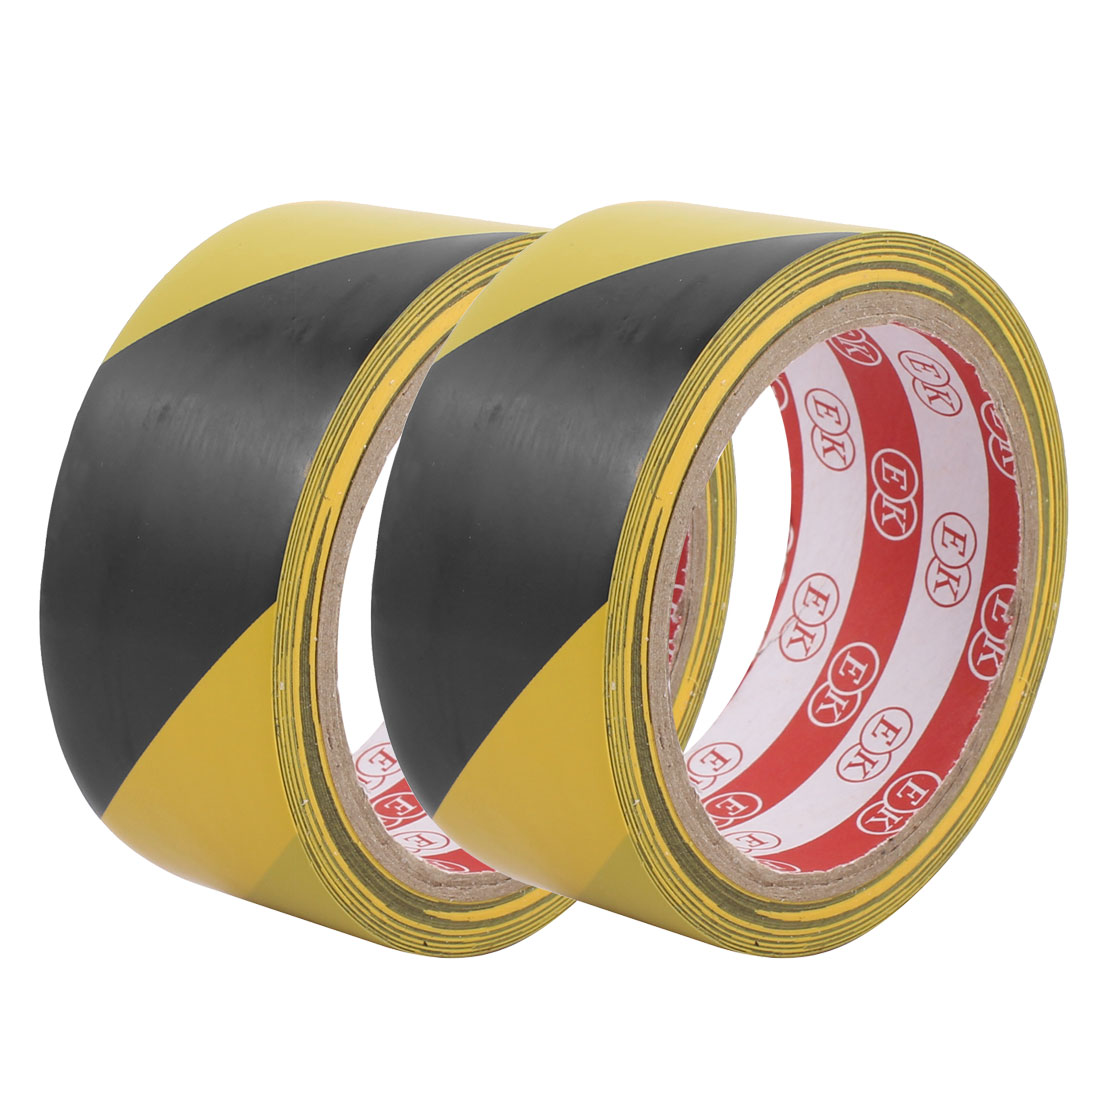 45mm x 17M PVC Striped Floor Boundary Marking Warning Tap Black Yellow 2Pcs - image 3 de 3